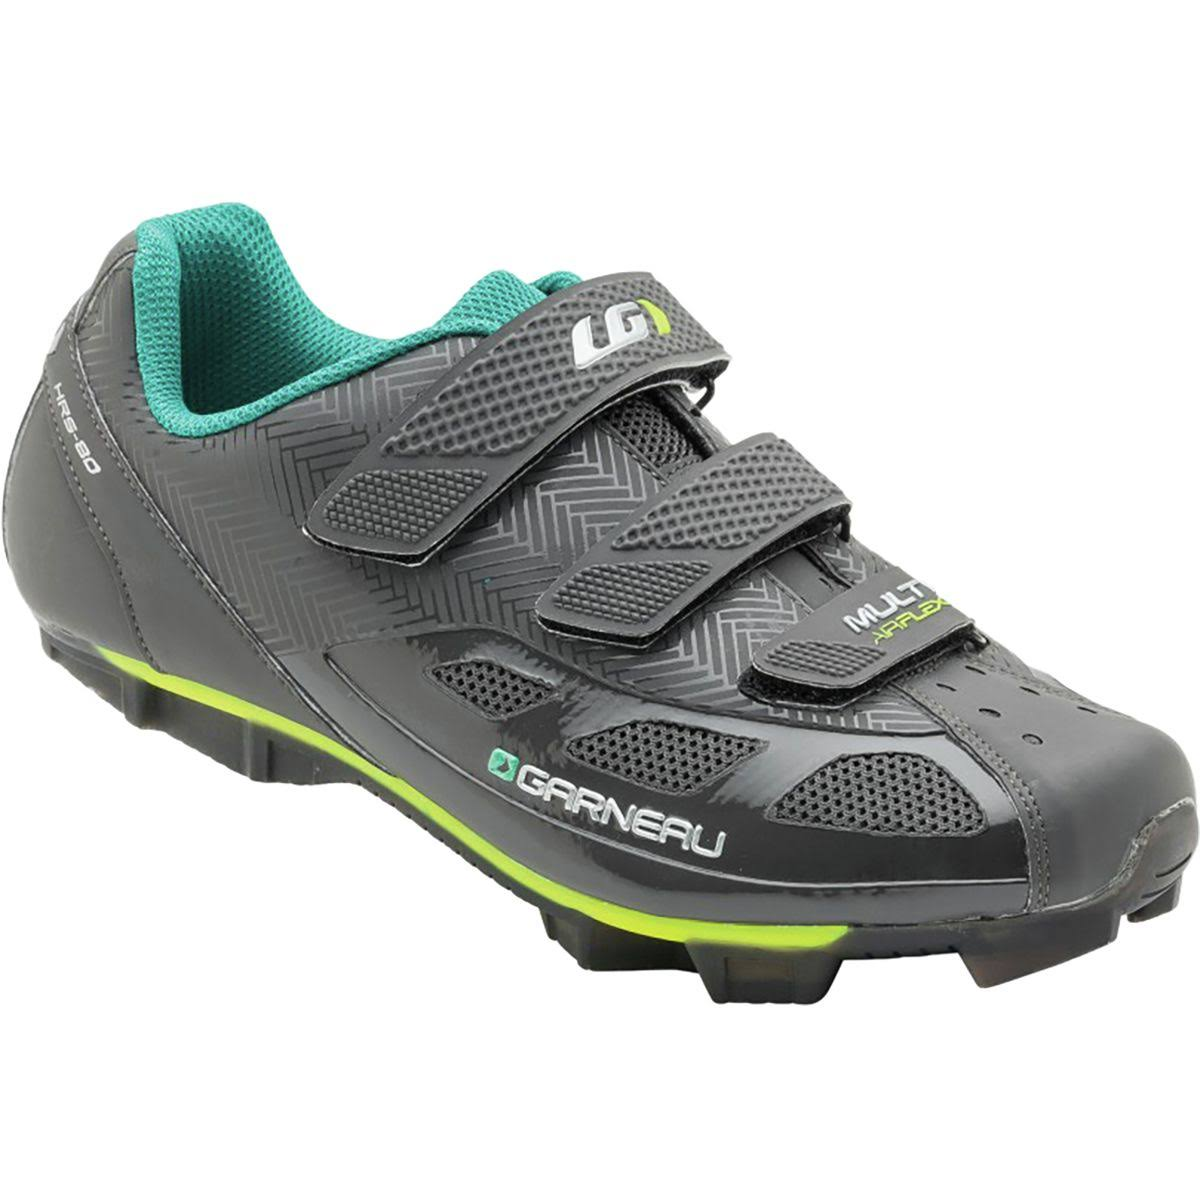 Louis Garneau Women's Multi Air Flex Bike Shoes - Asphalt, 8 US